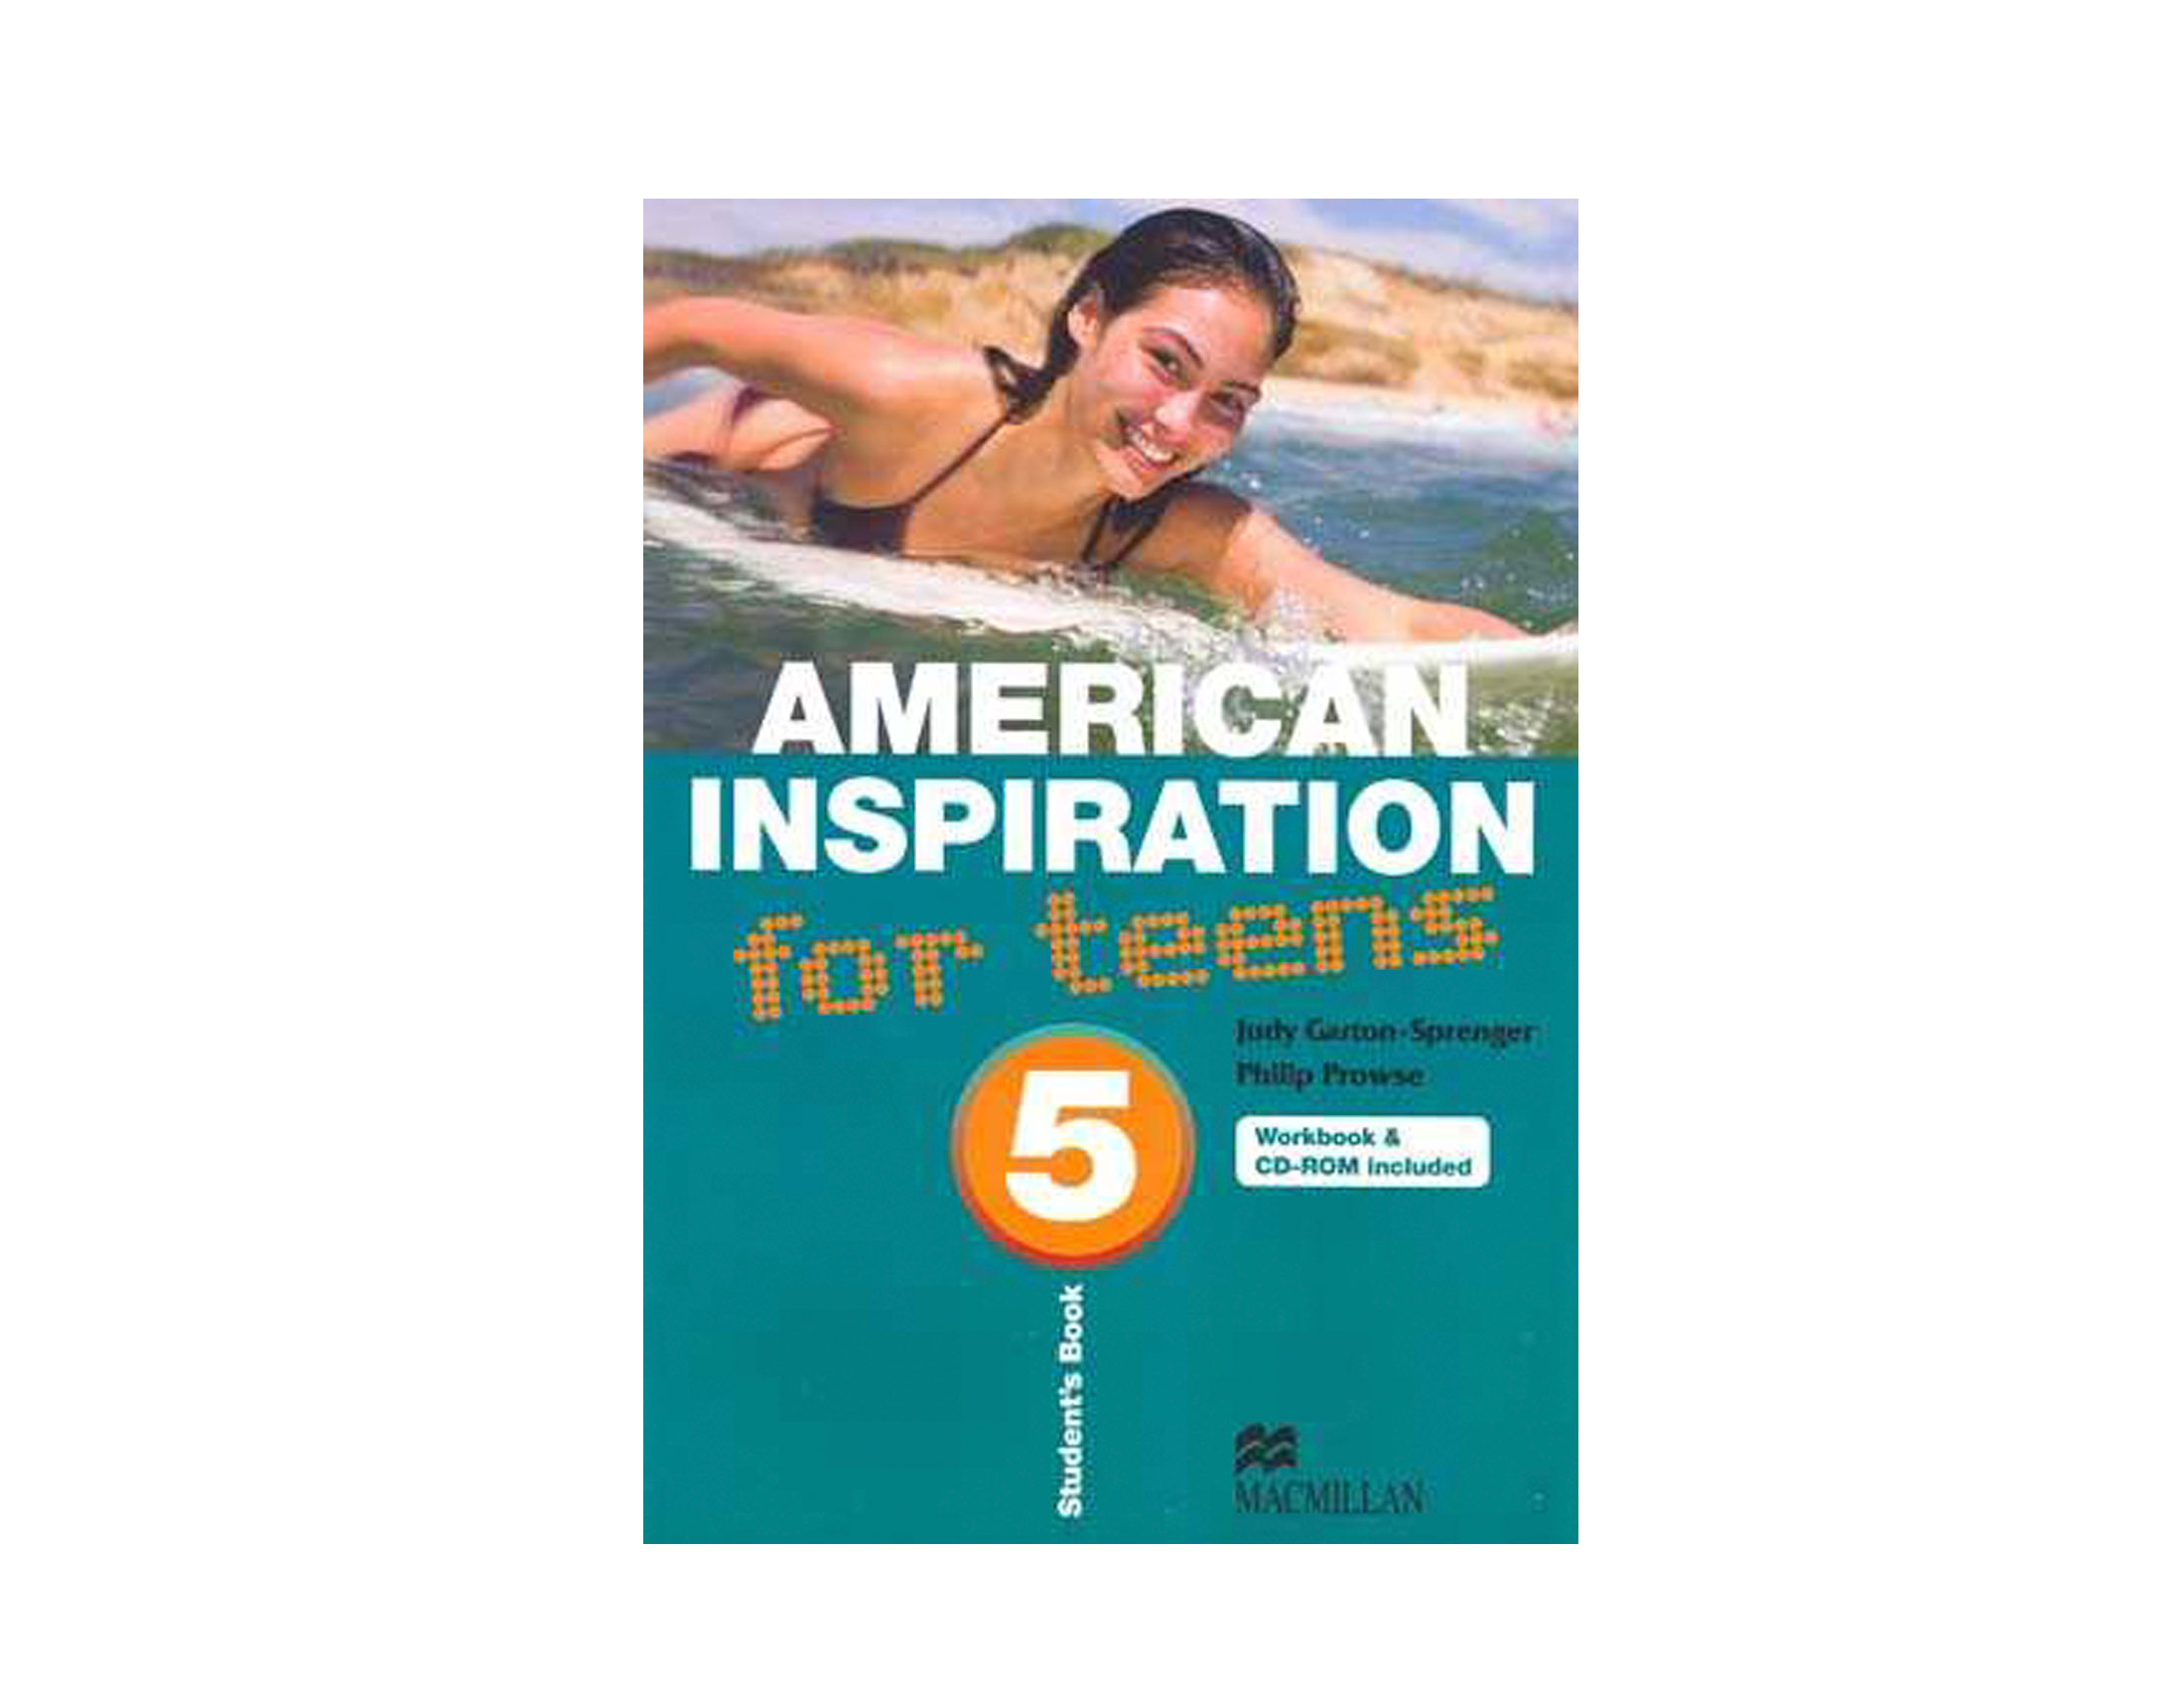 AMERICAN INSPIRATION FOR TEENS STD 5